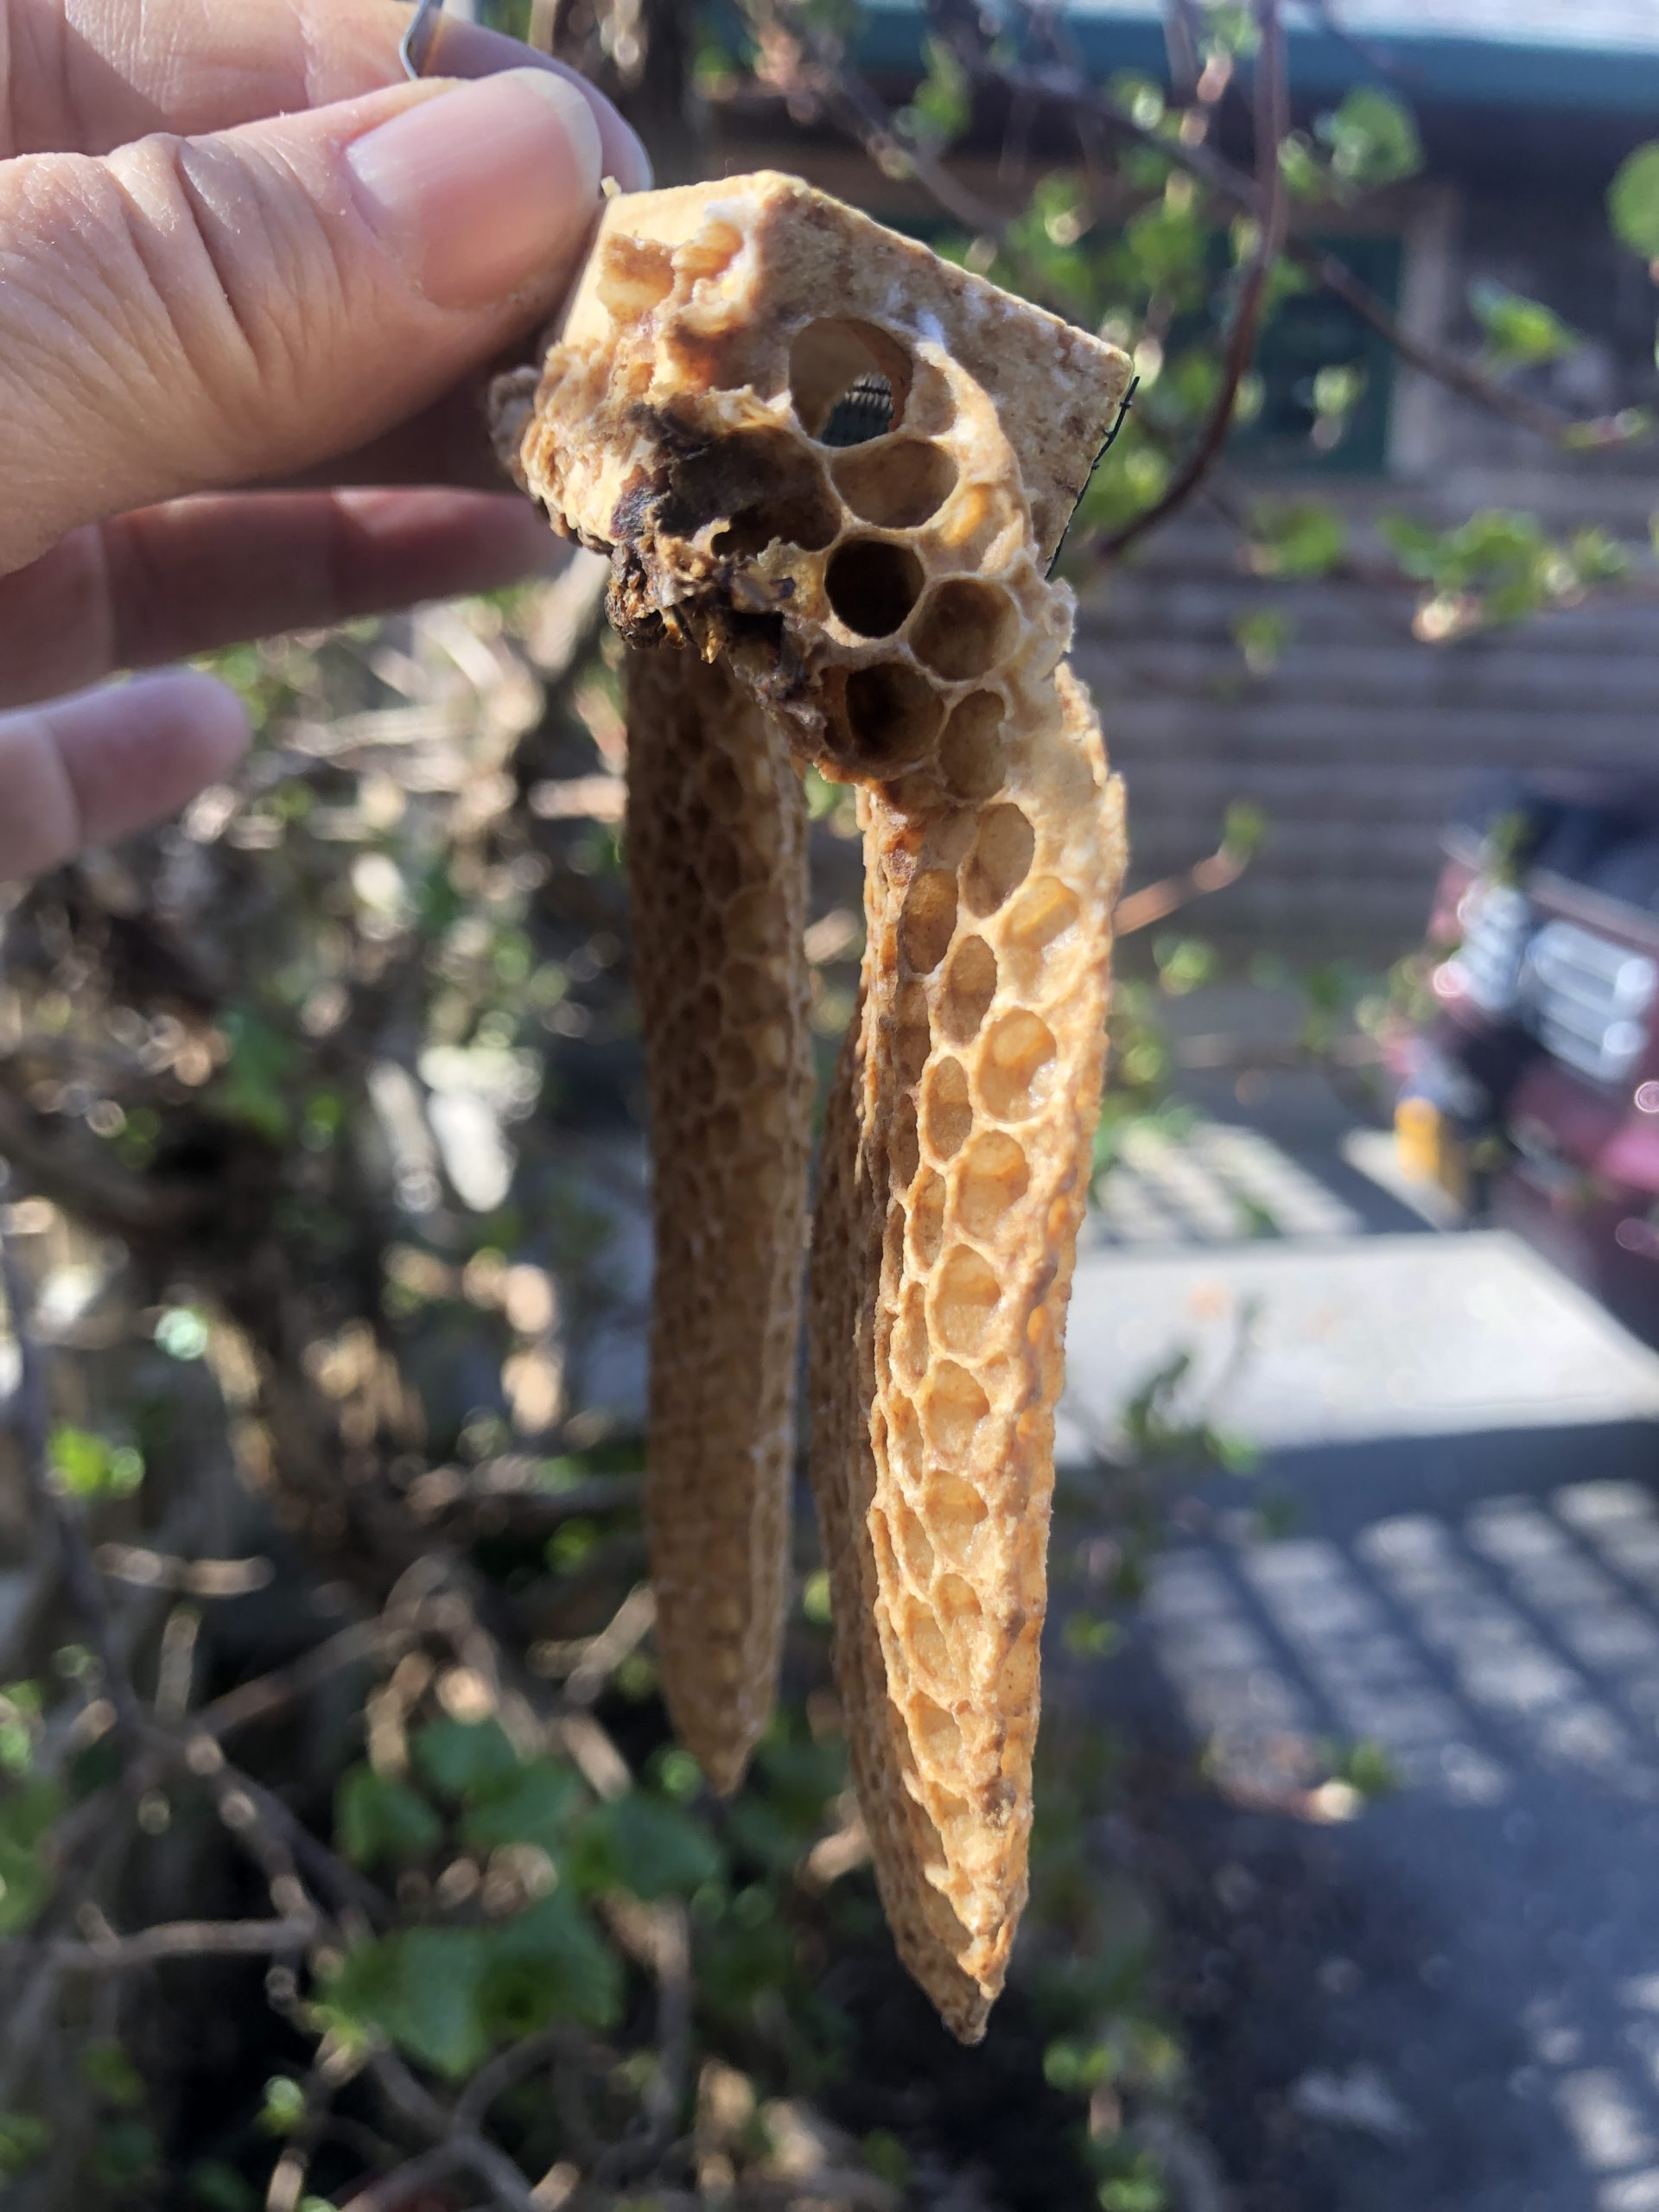 The comb seems to have been constructed to provide the queen with an easy pathway out of the queen cage and into the main hive body.